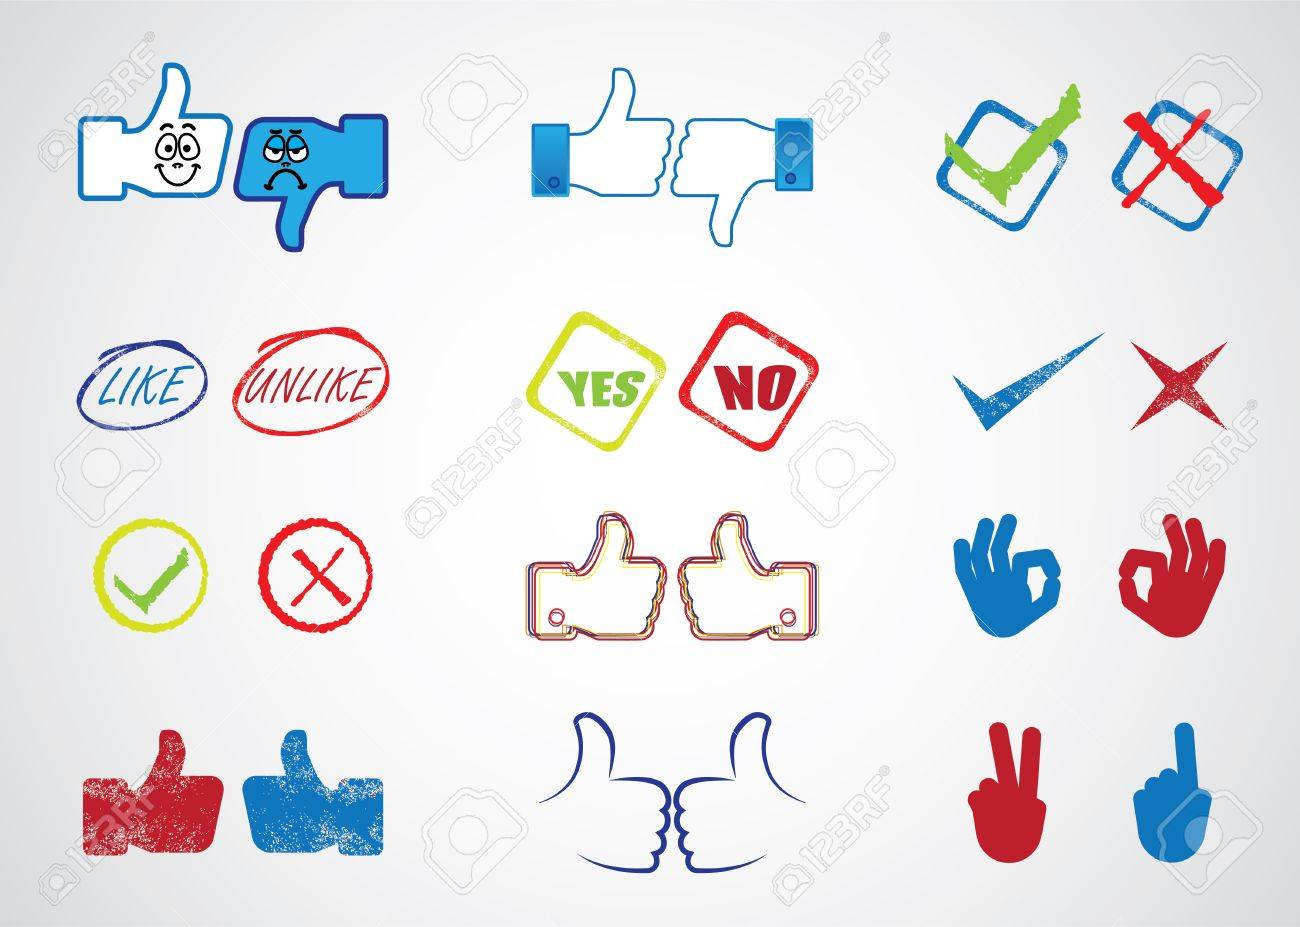 Internet website icons for approval, disapproval, like, unlike, yes, no, thumb up, thumn down, right, wrong, correct, incorrect, etc Stock Vector - 13425403